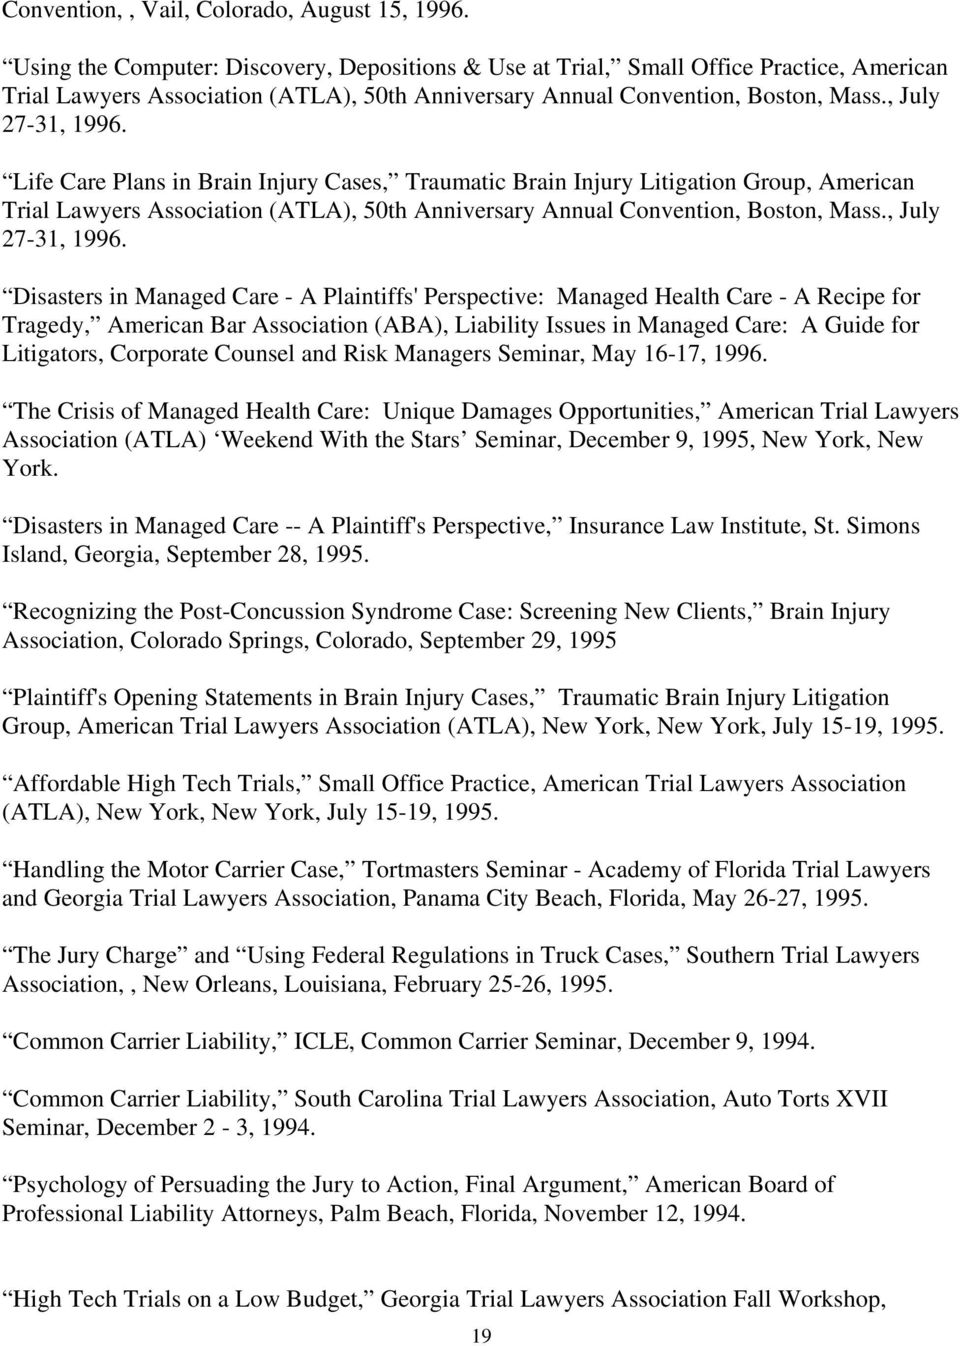 Life Care Plans in Brain Injury Cases, Traumatic Brain Injury Litigation Group, American Trial Lawyers Association (ATLA), 50th Anniversary Annual Convention, Boston, Mass., July 27-31, 1996.